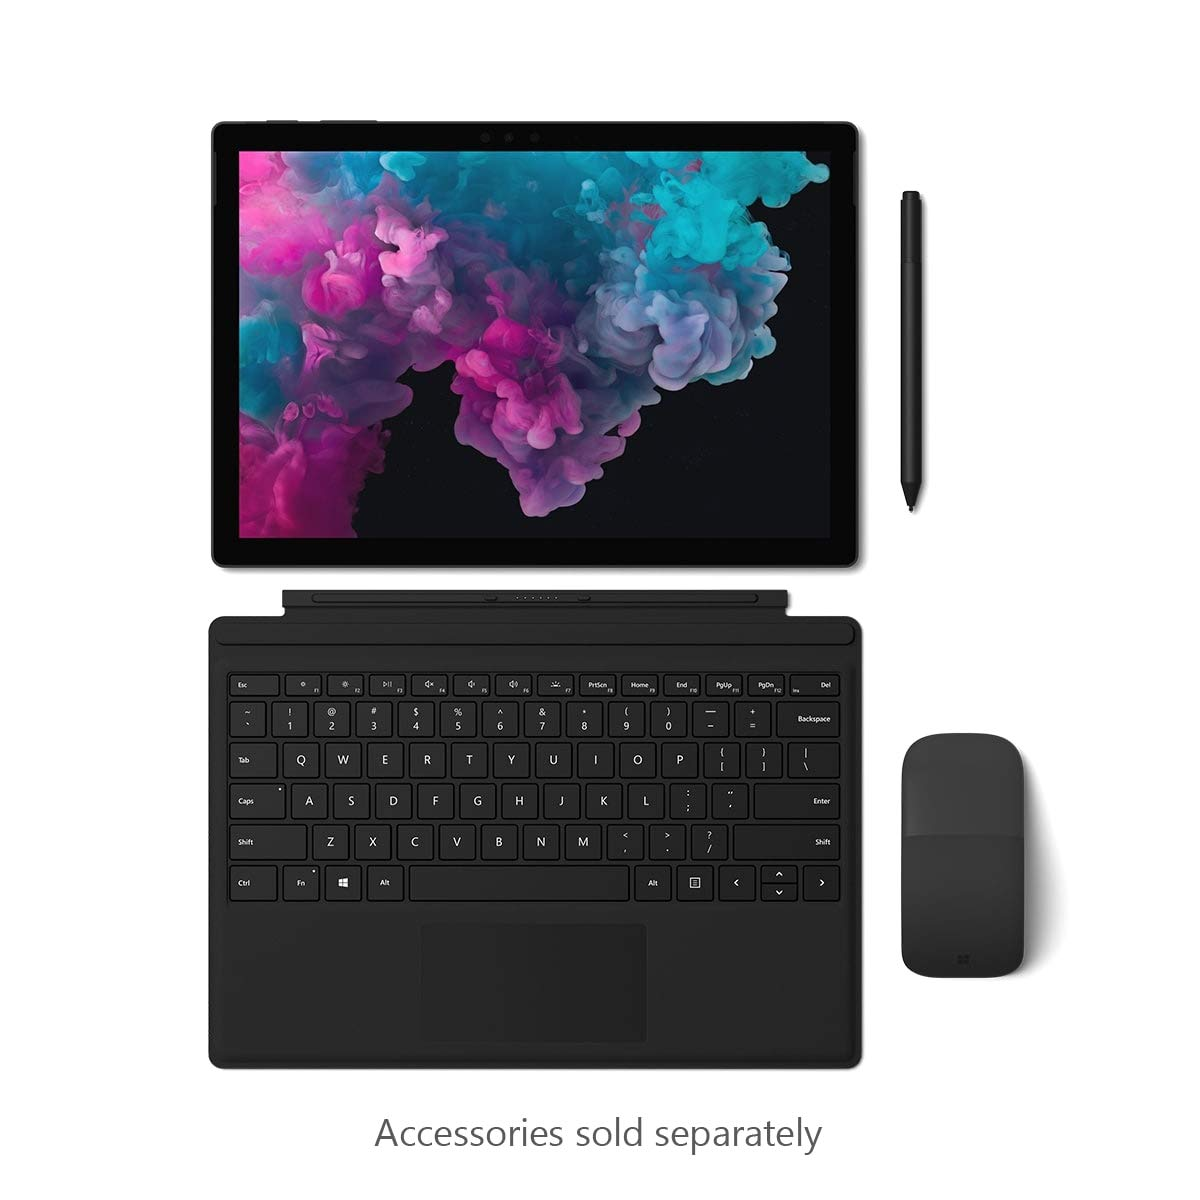 Microsoft Surface Pro 6 (Intel Core i5, 8GB RAM, 256 GB) - Black